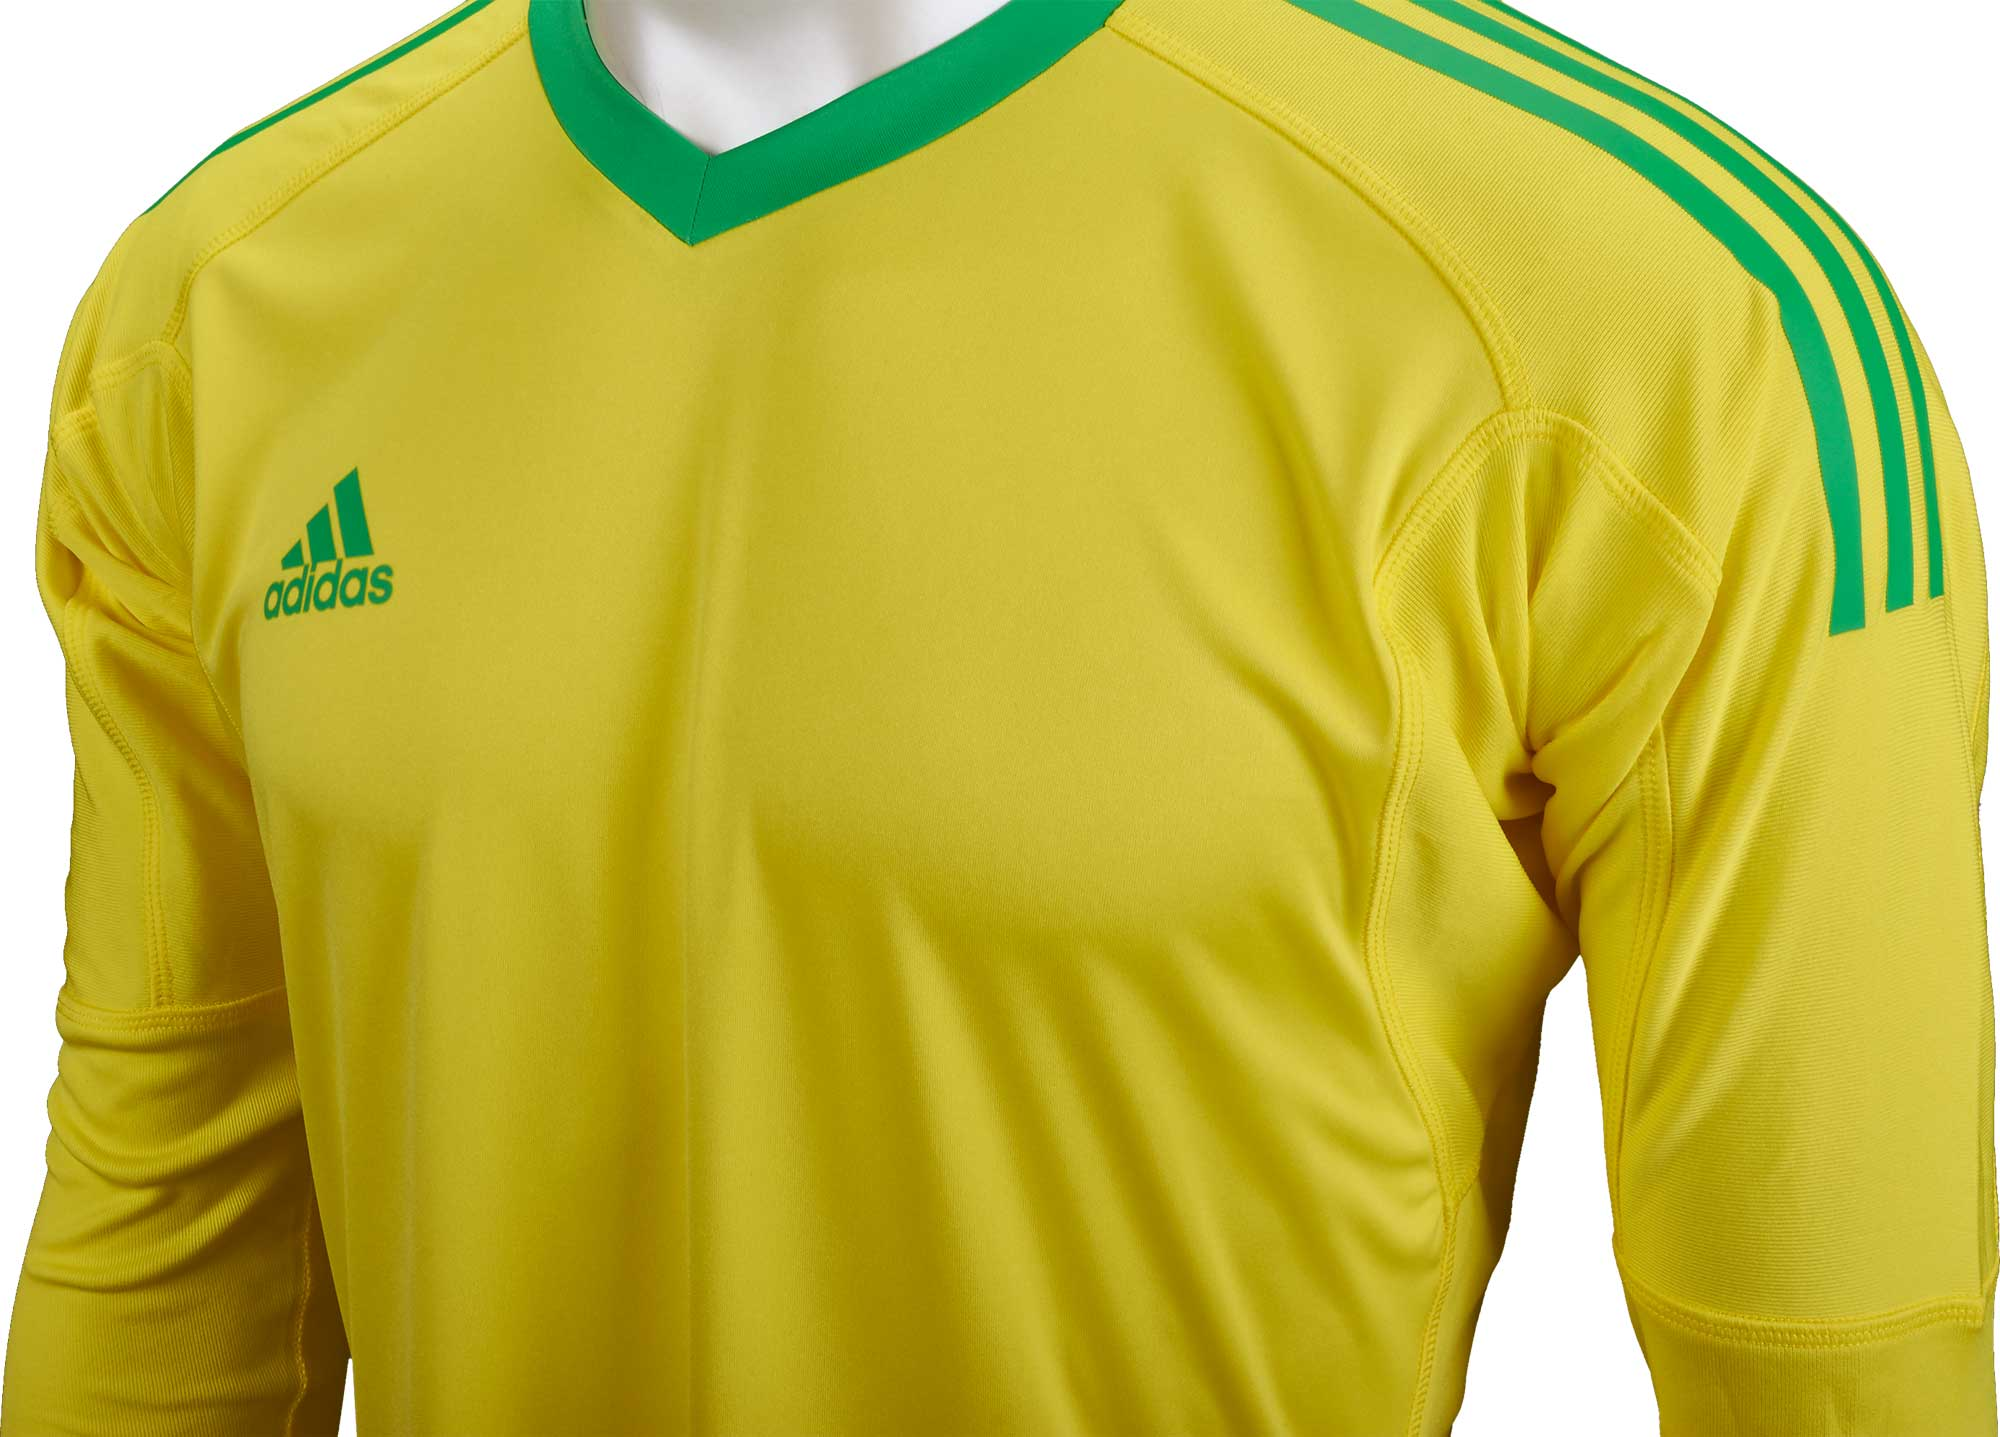 0531df1c7 adidas Revigo 17 Goalkeeper Jersey - Bright Yellow   Energy Green ...